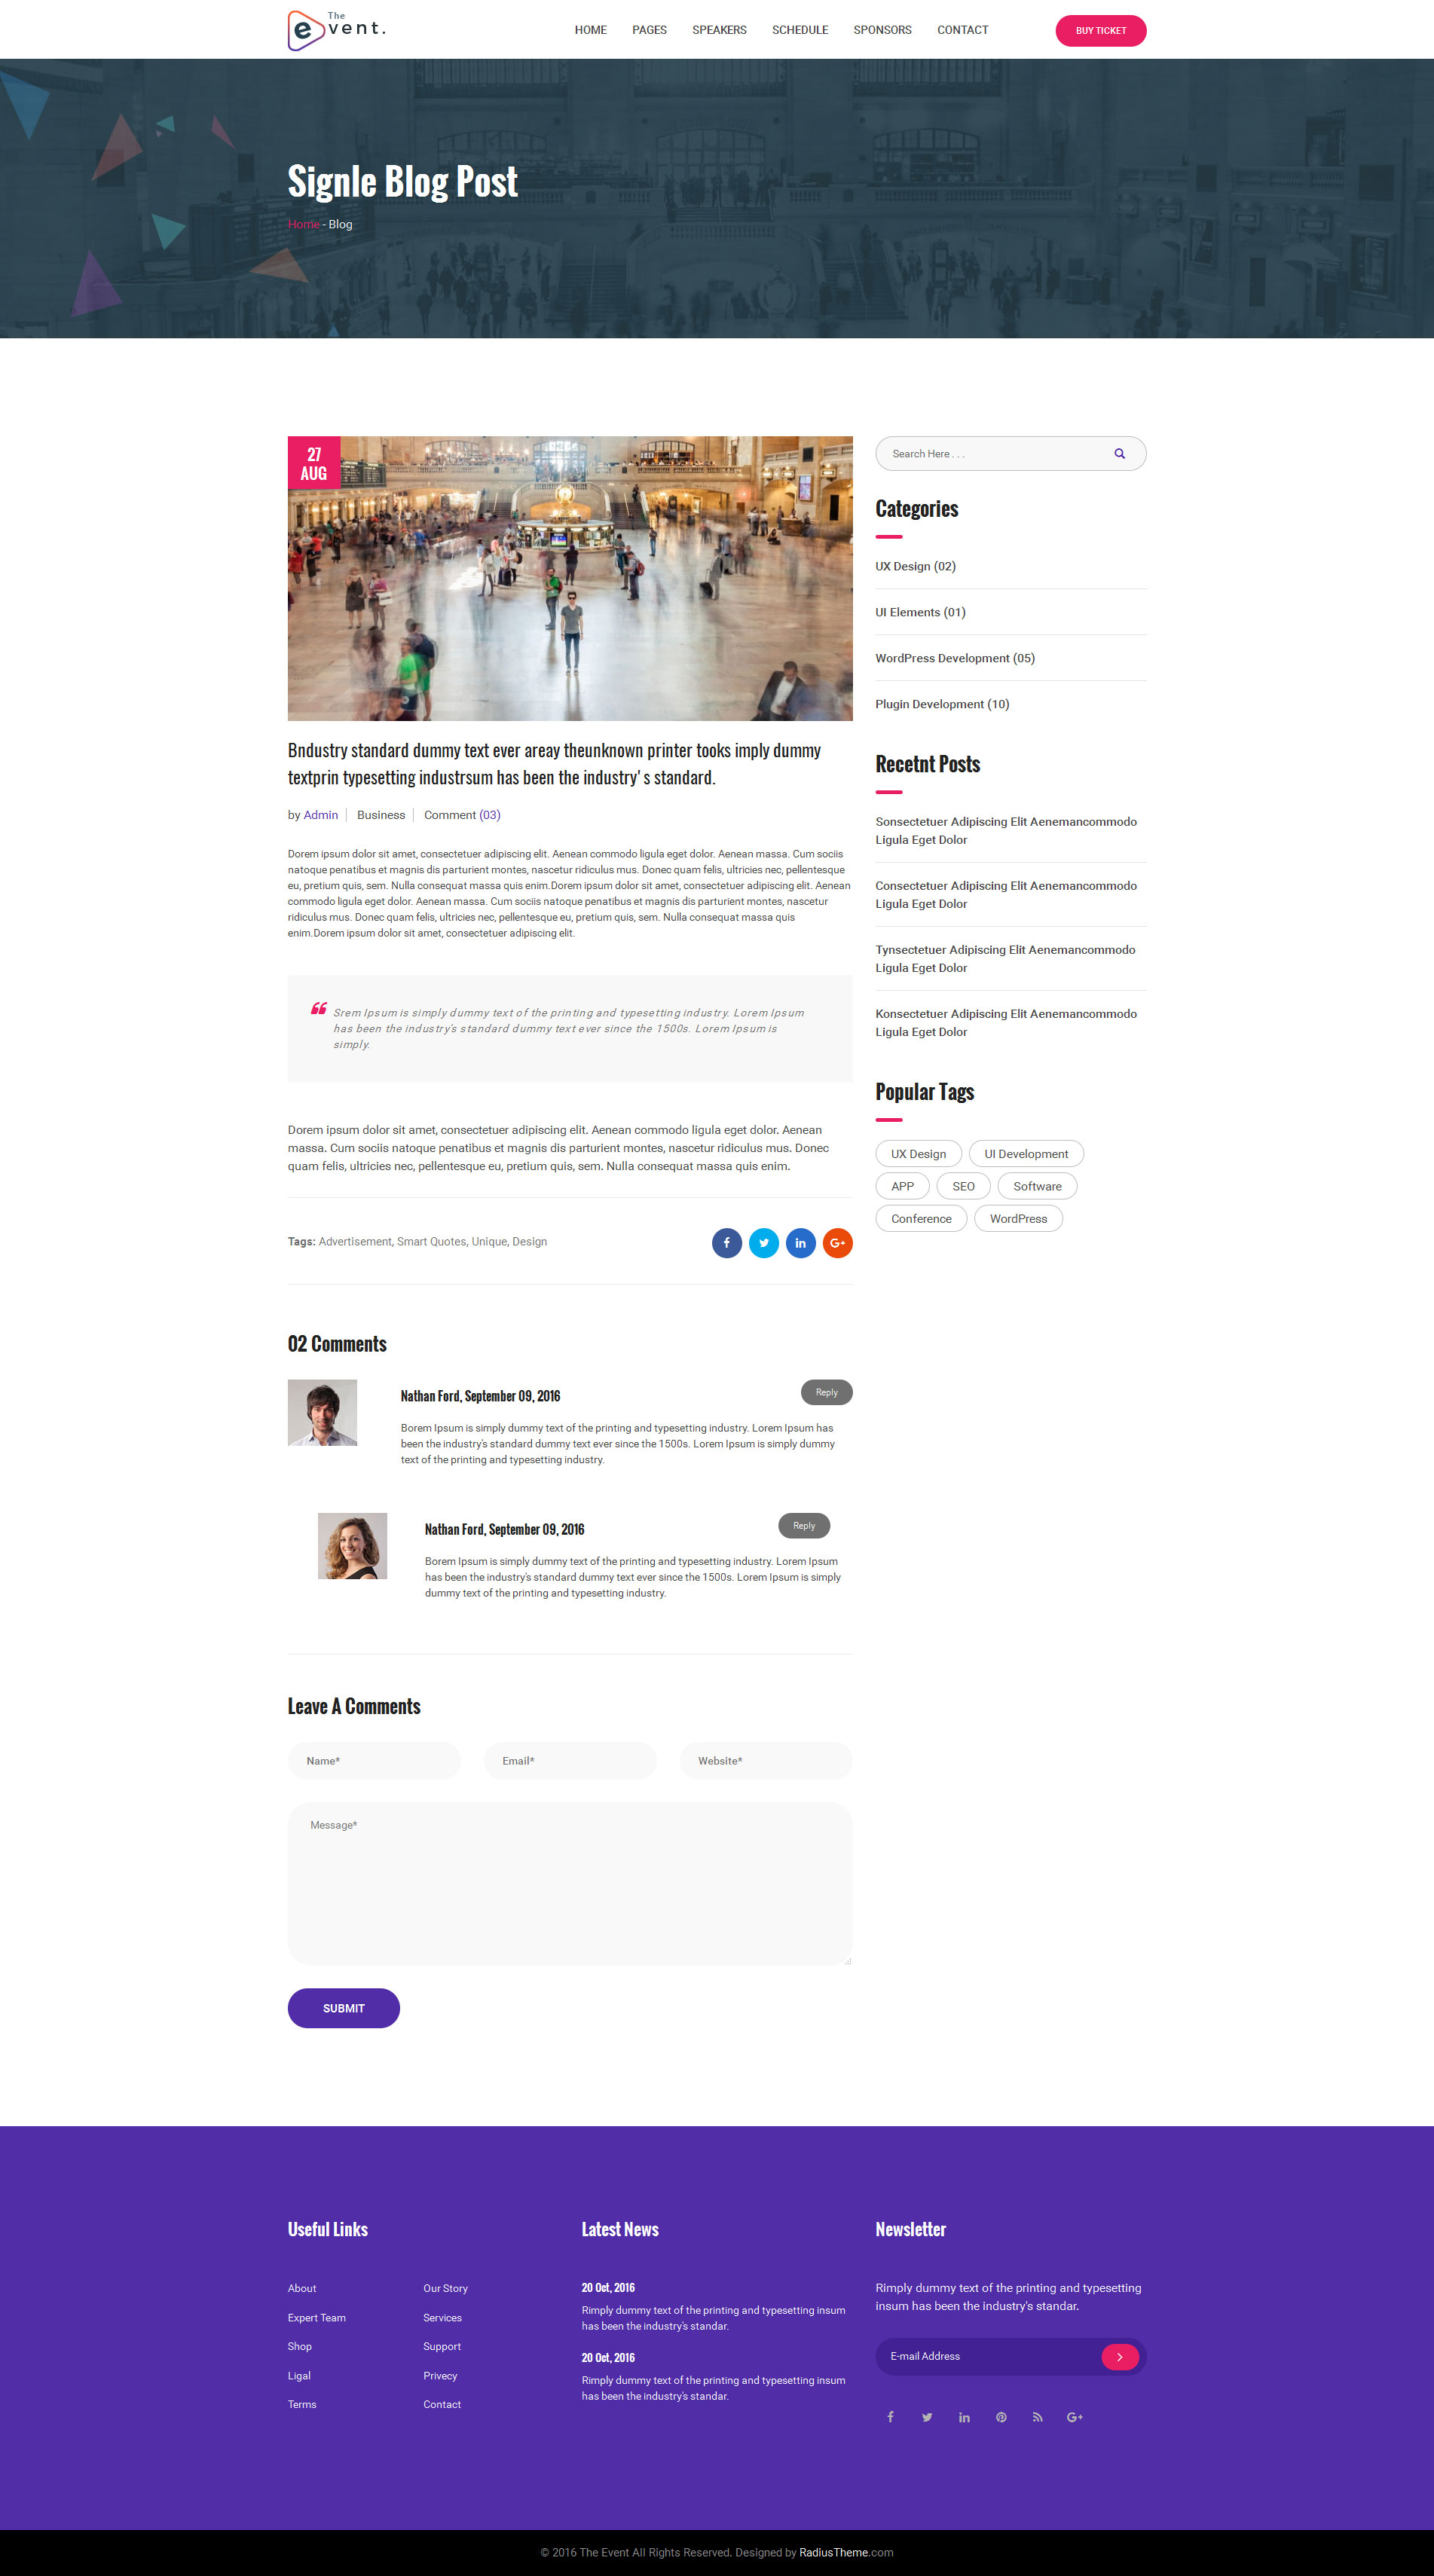 TheEvent Event Conference HTML5 Template by RadiusTheme – Seminar Schedule Template